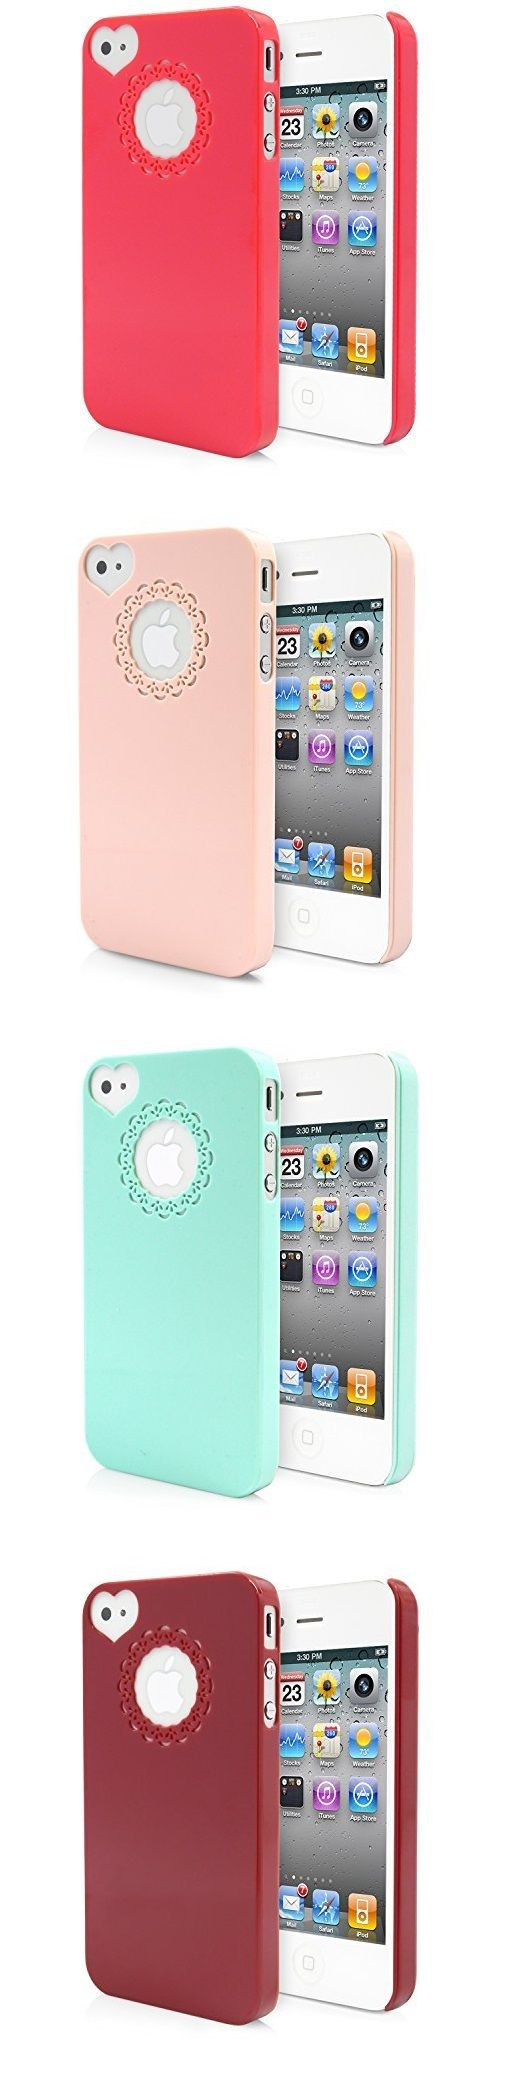 Awesome deals! Time to get your summer accessories ready... sunglasses, bikini and new unique colorful case for iPhone 4S! Ultra Slim Thin Premium Lovely Cute On Heart Love Camera Hole Cover for Girls Lace Logo Design Pattern Perfect for Girls Women| MagicMobile